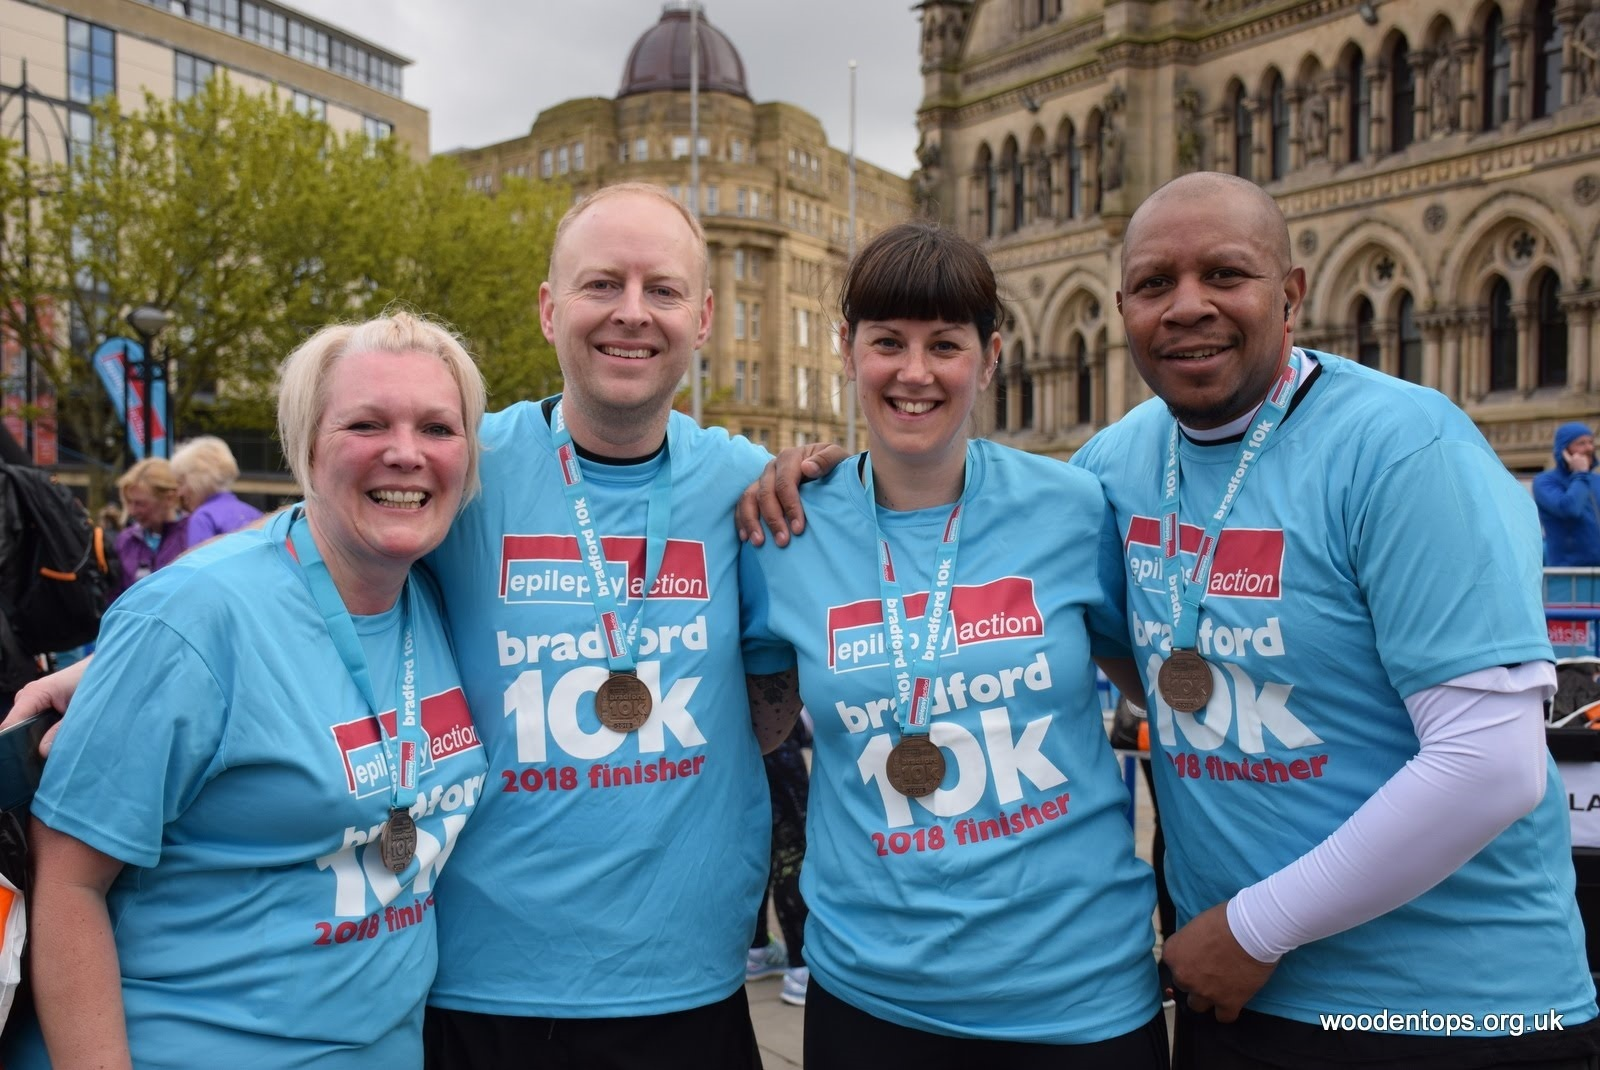 Entries are open for Epilepsy Action Bradford 10k run